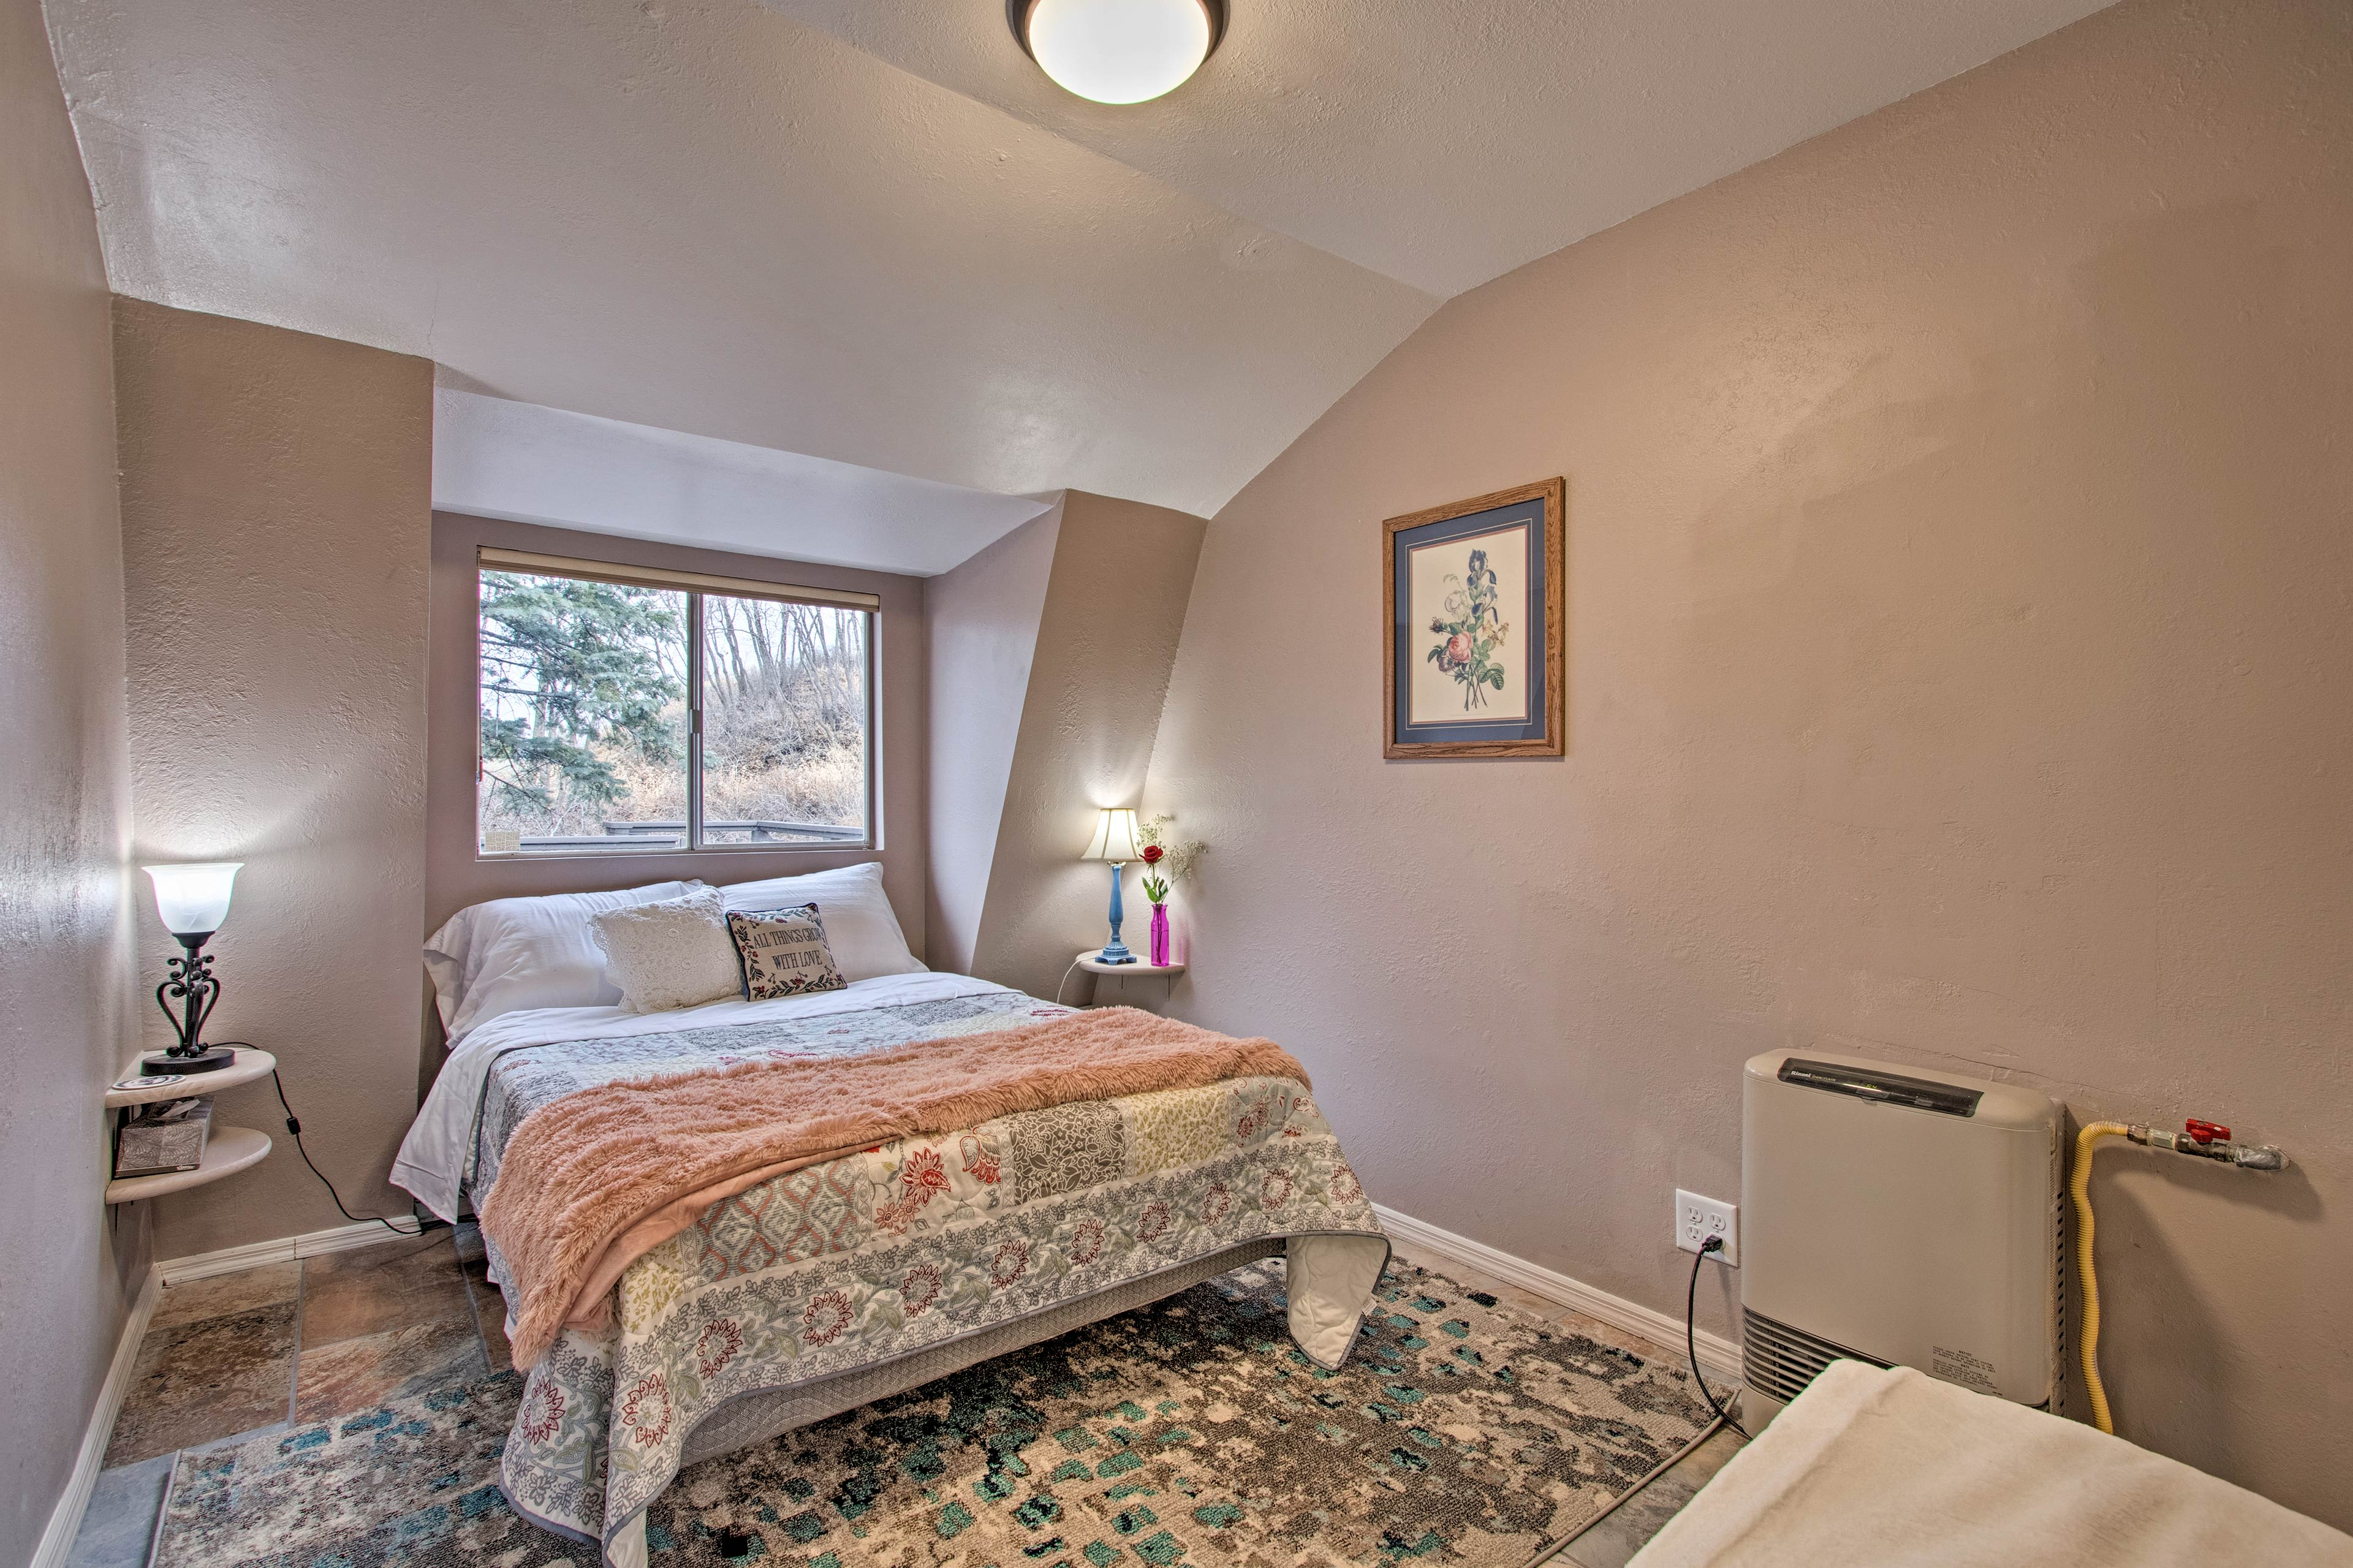 This room has a full-sized bed for 2.